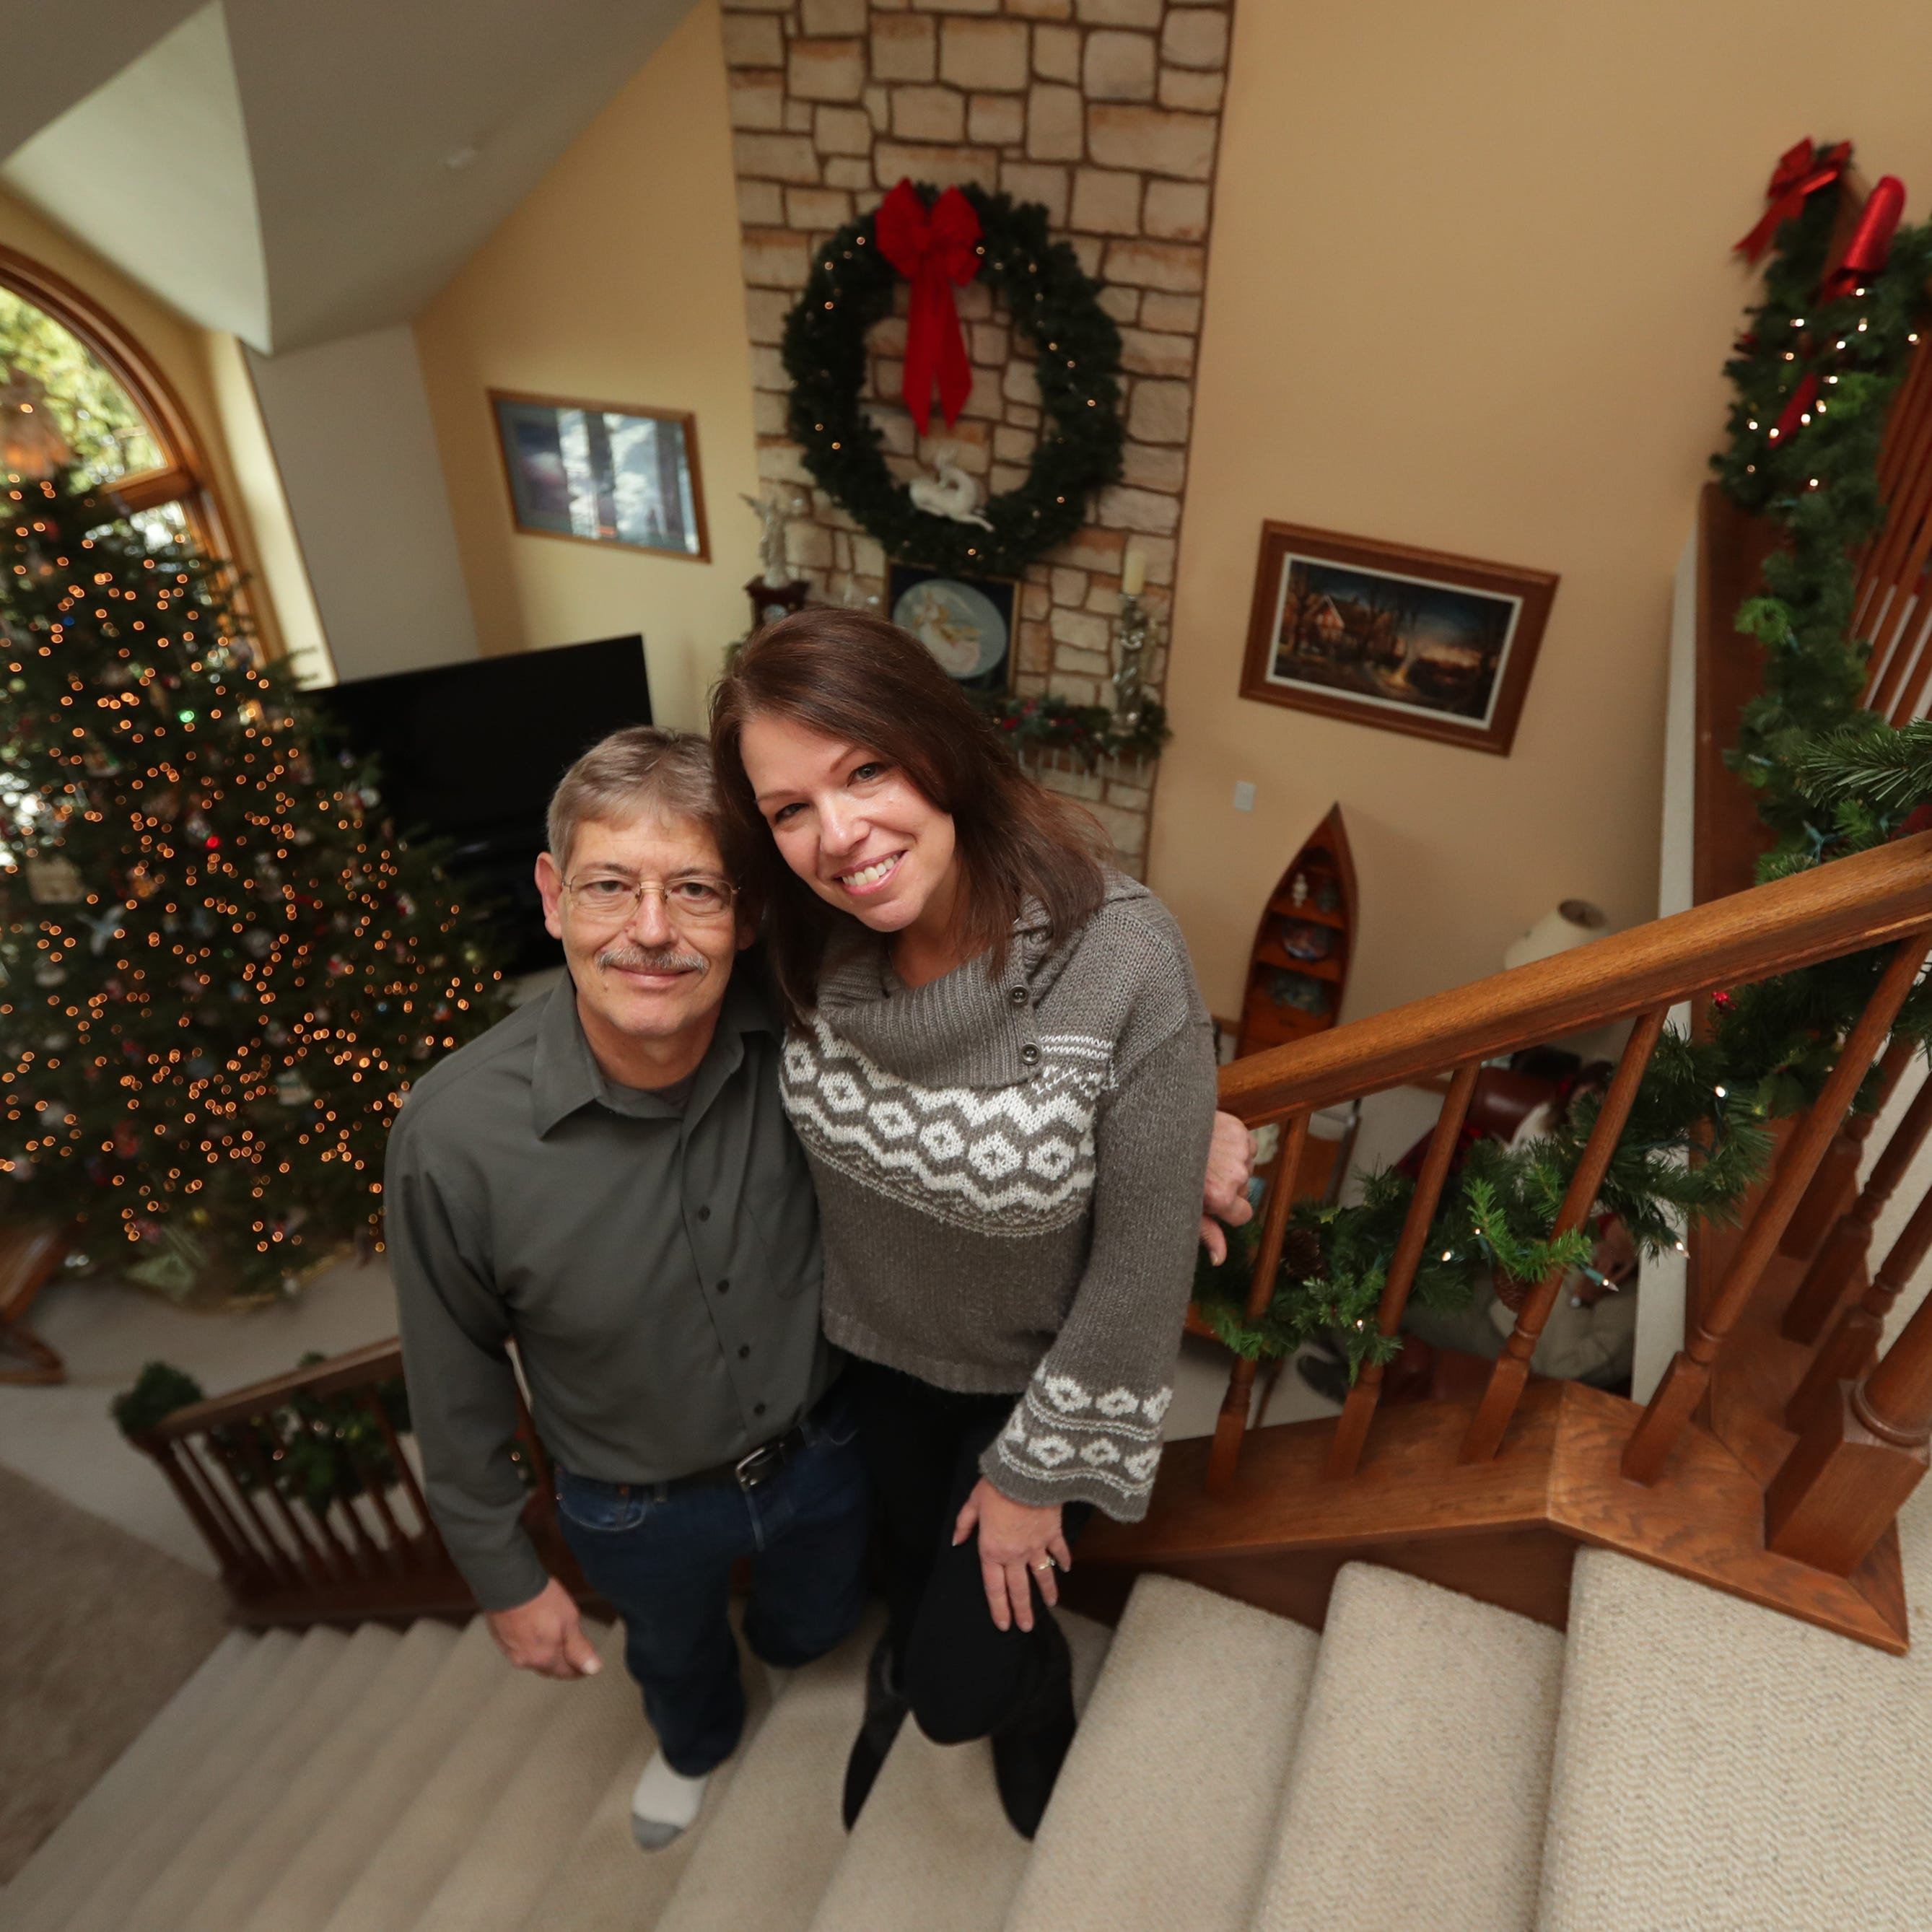 Warm Christmas memories led Muskego woman to decorate home with 15 trees, plus